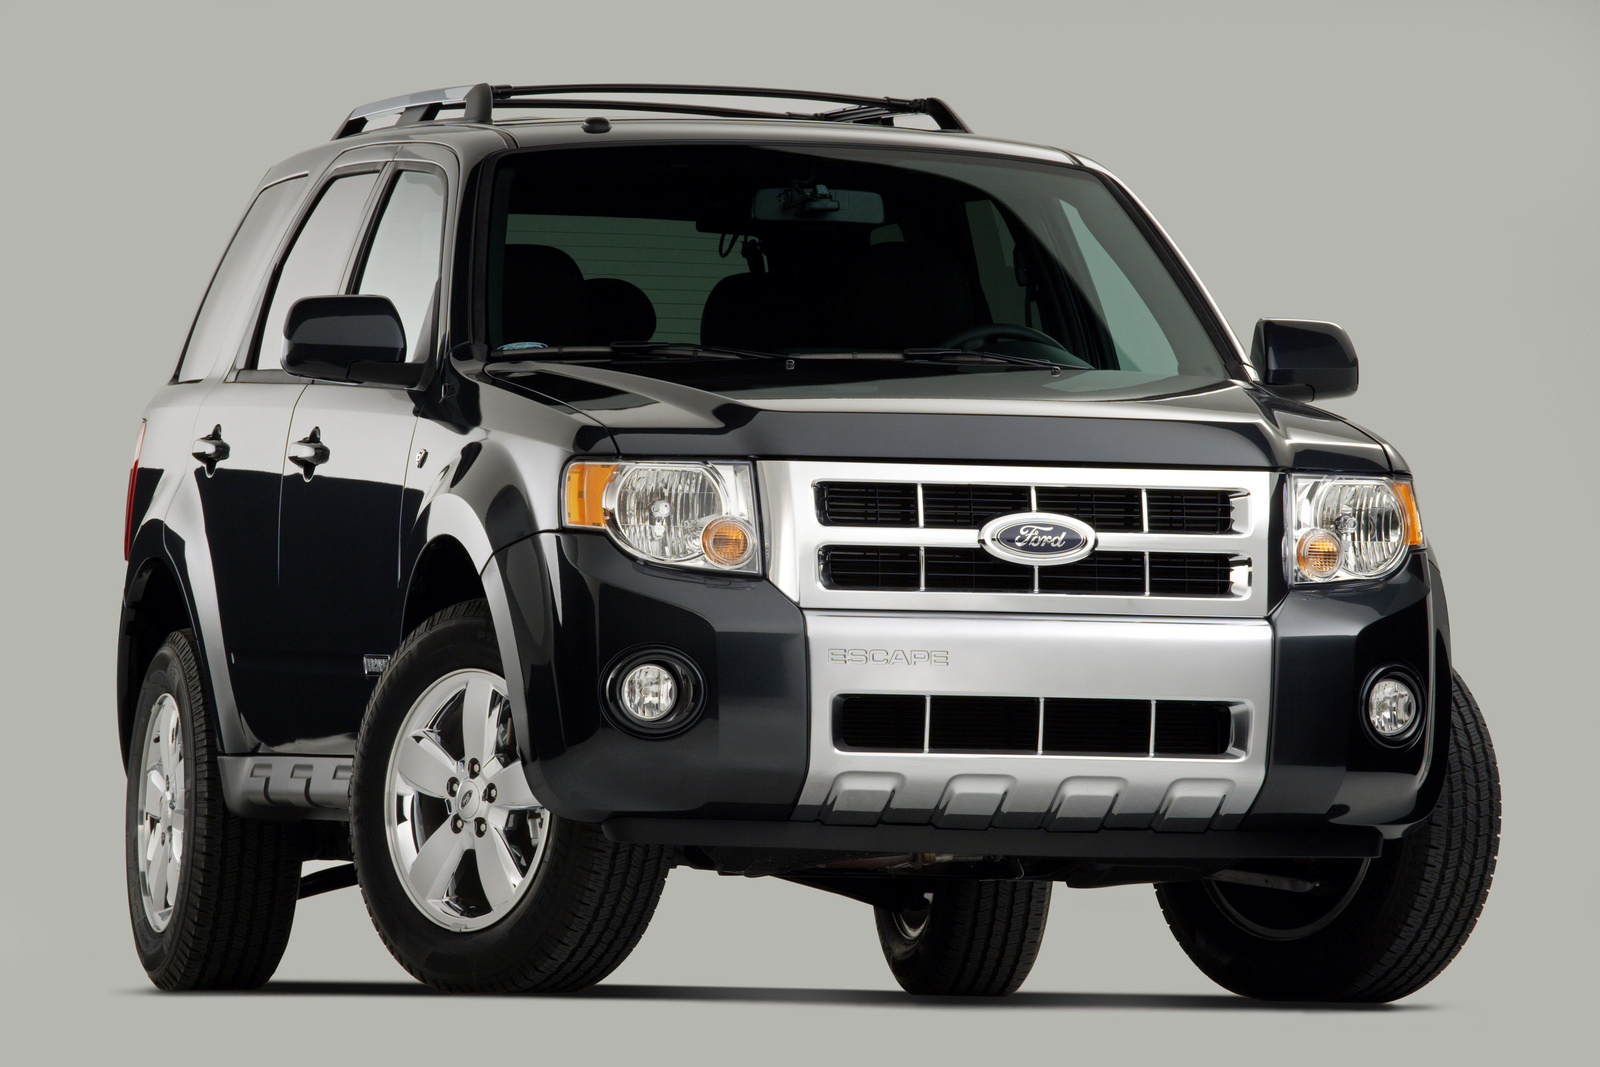 Car Wallpaper Ford Endeavour SUV Wallpaper 1600x1067